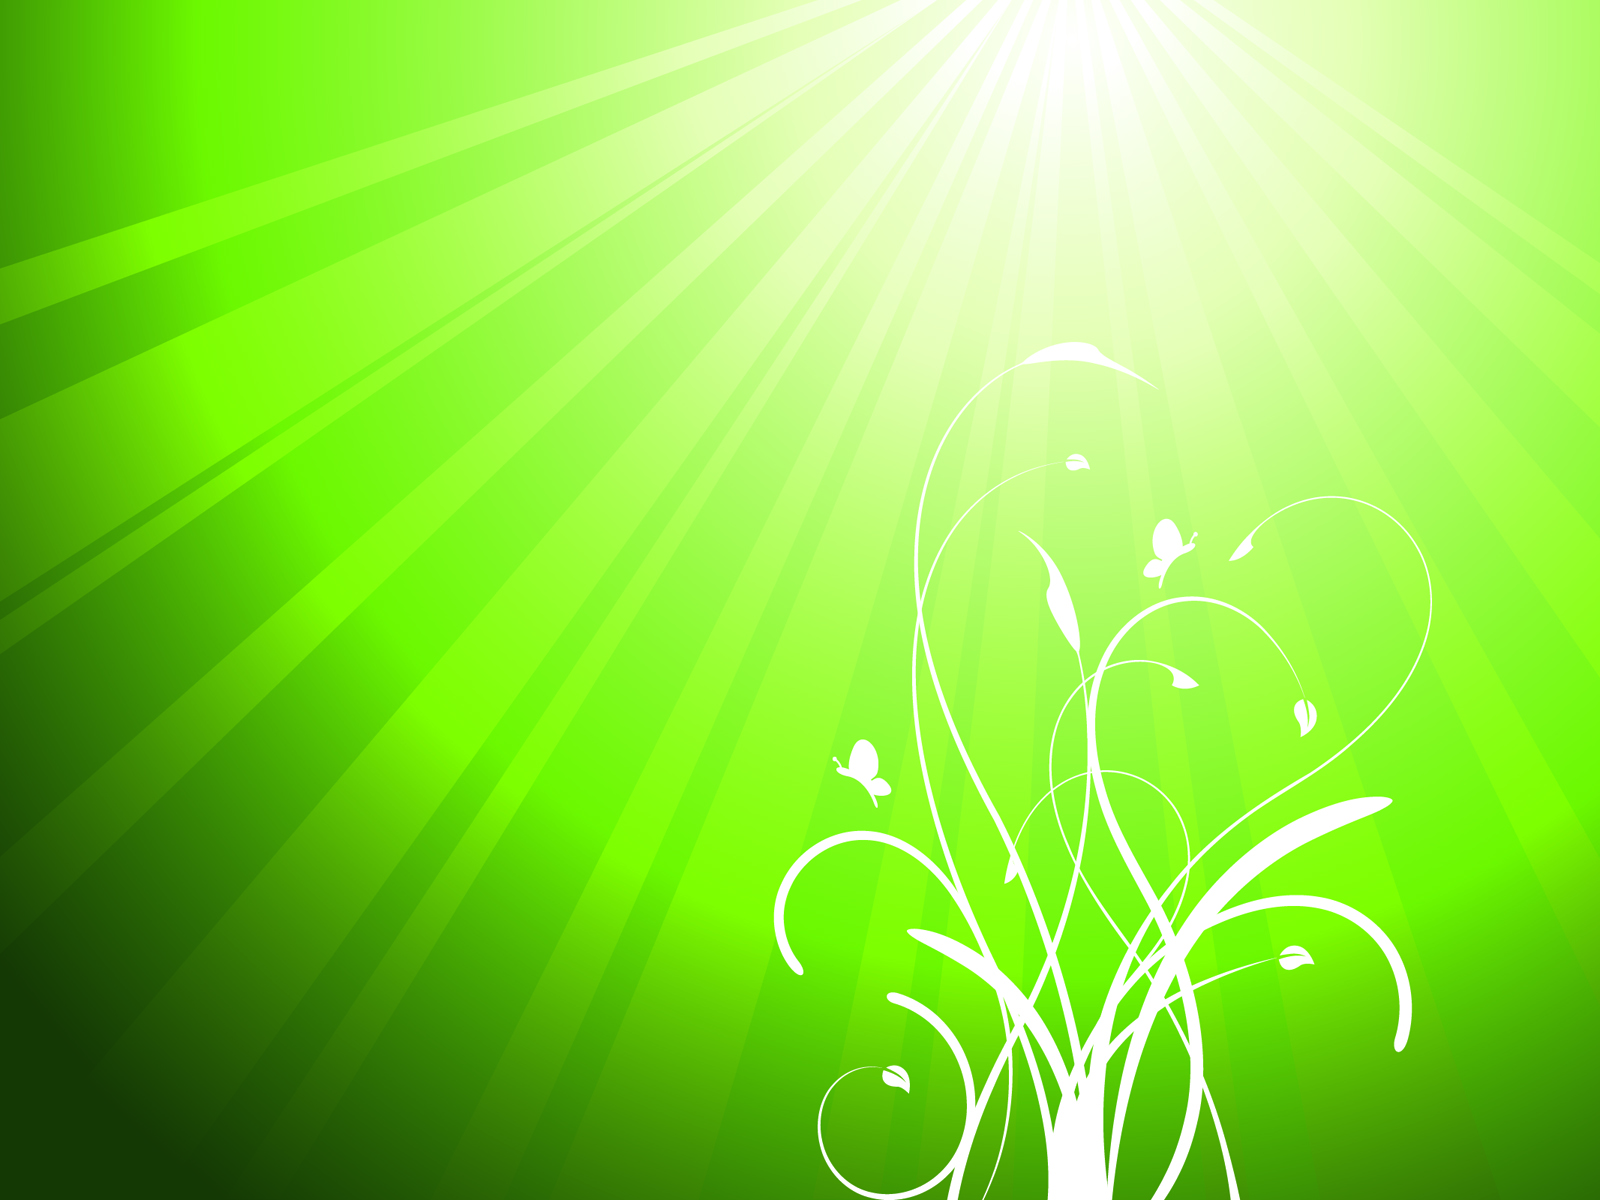 Ppt background green hd